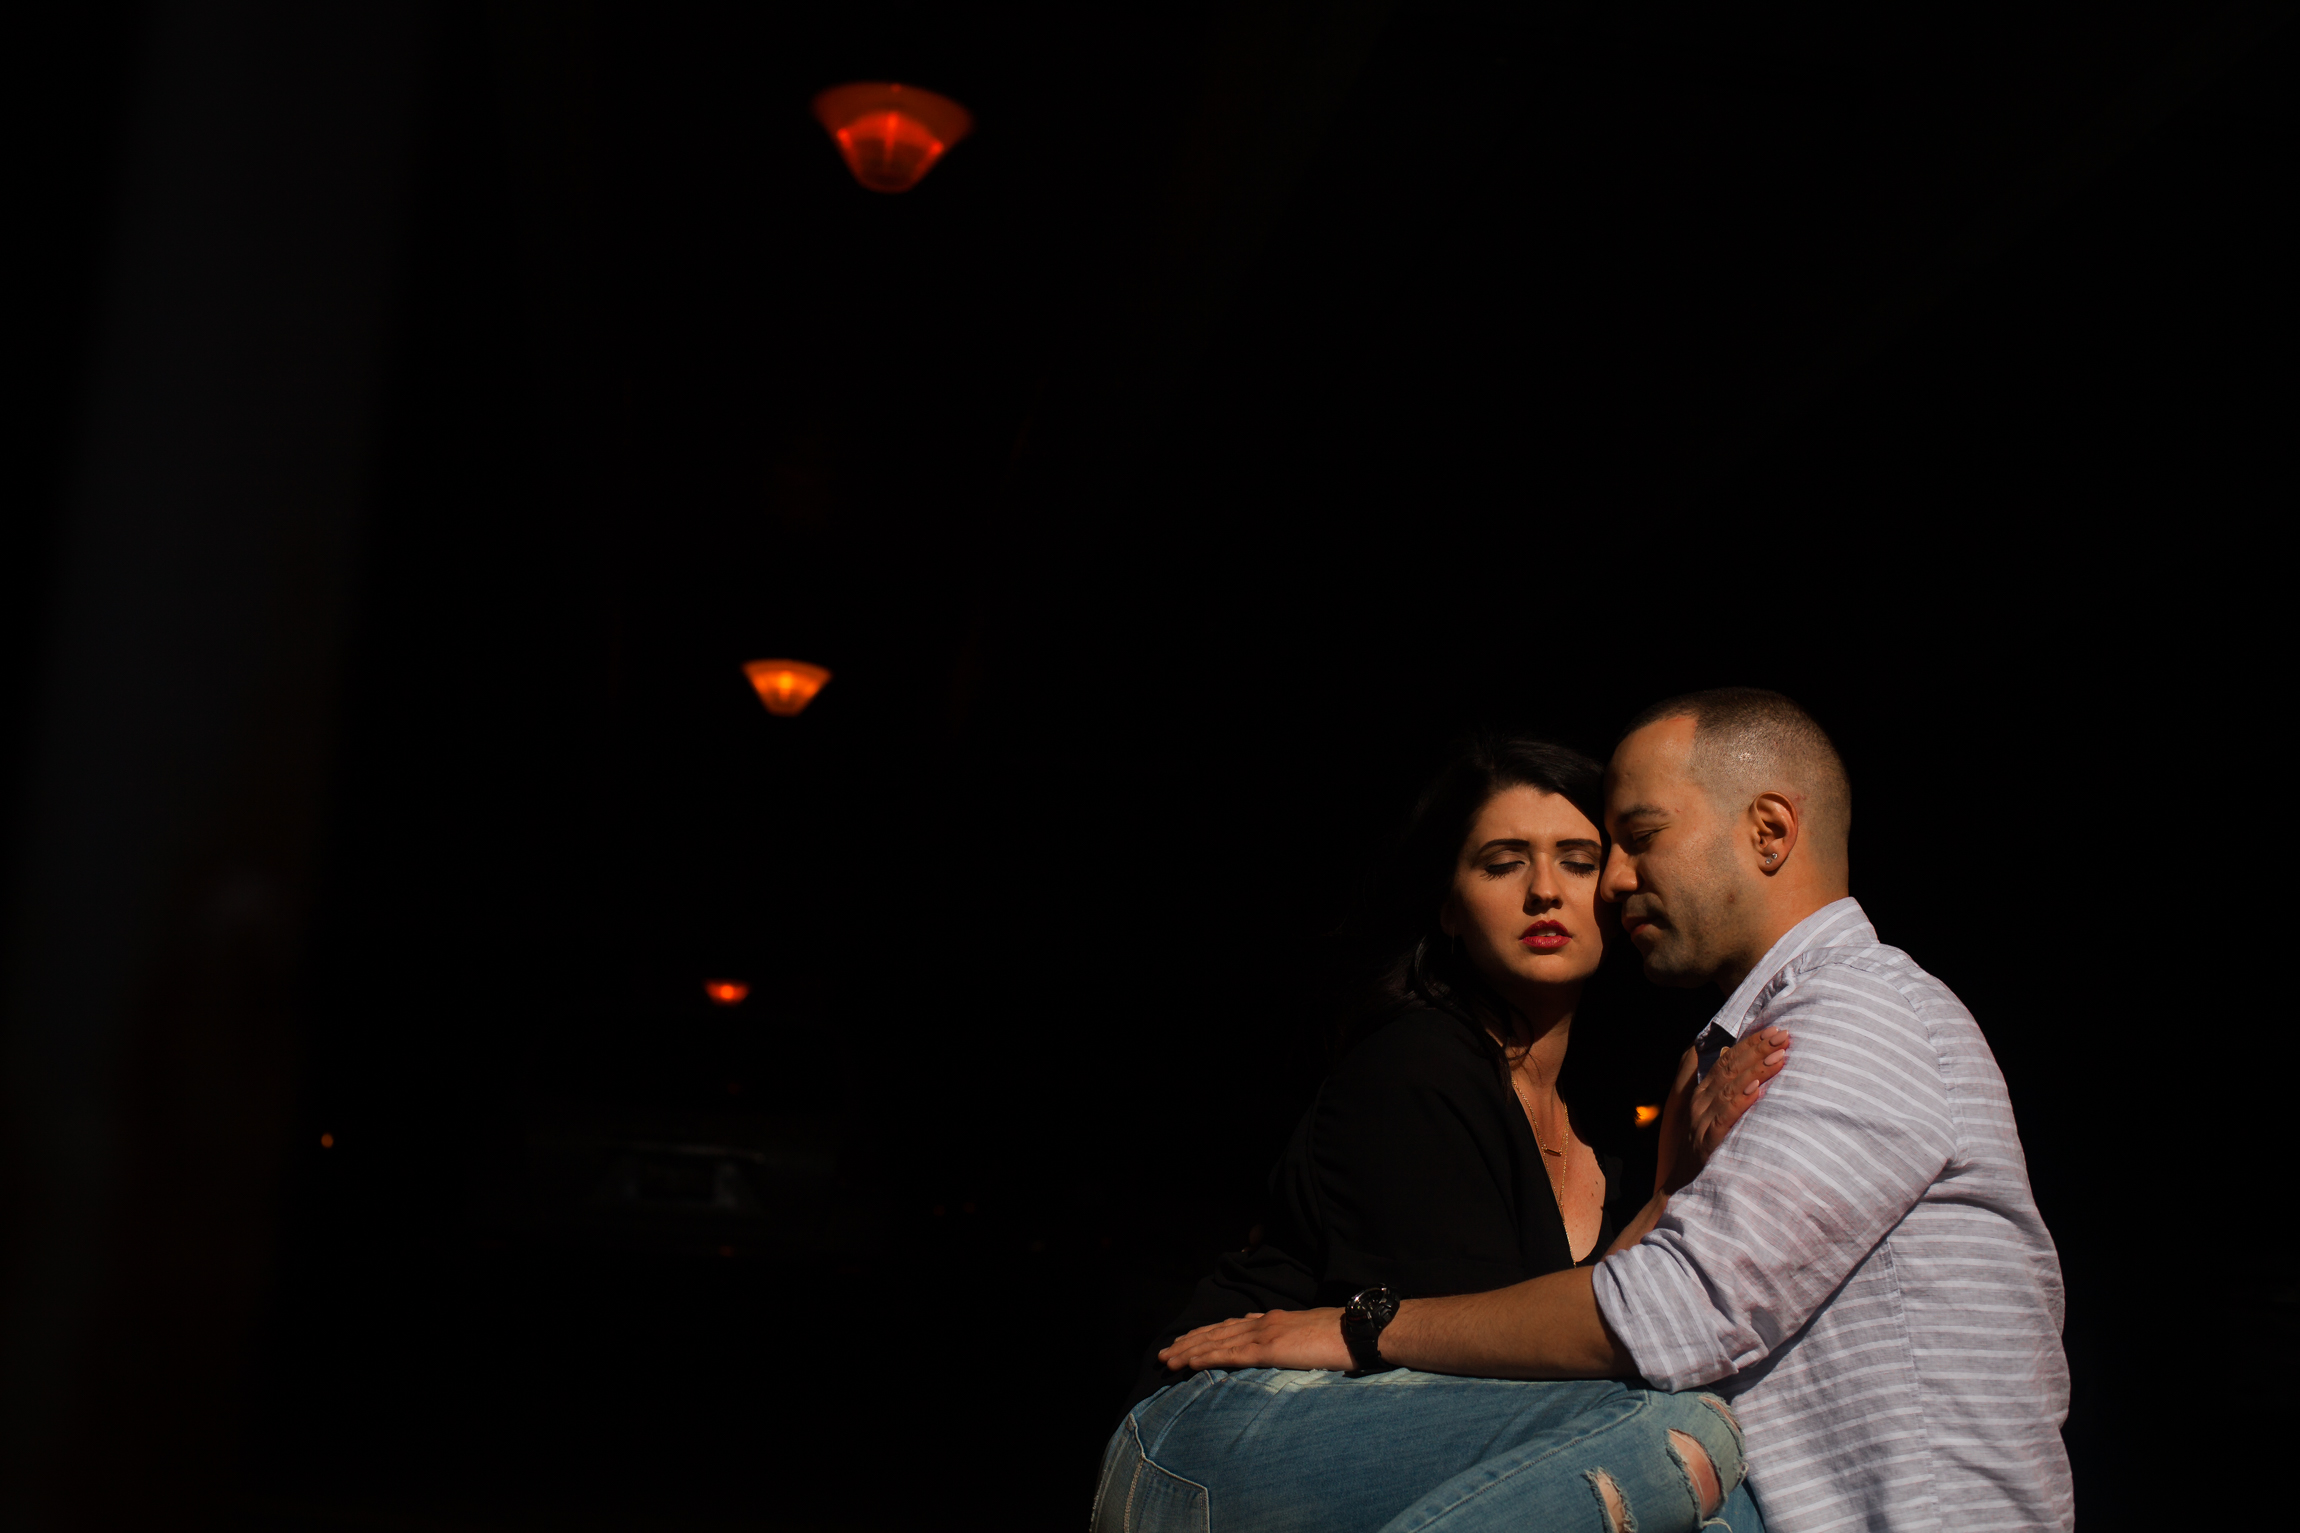 naperville-engagement-photography-2.jpg